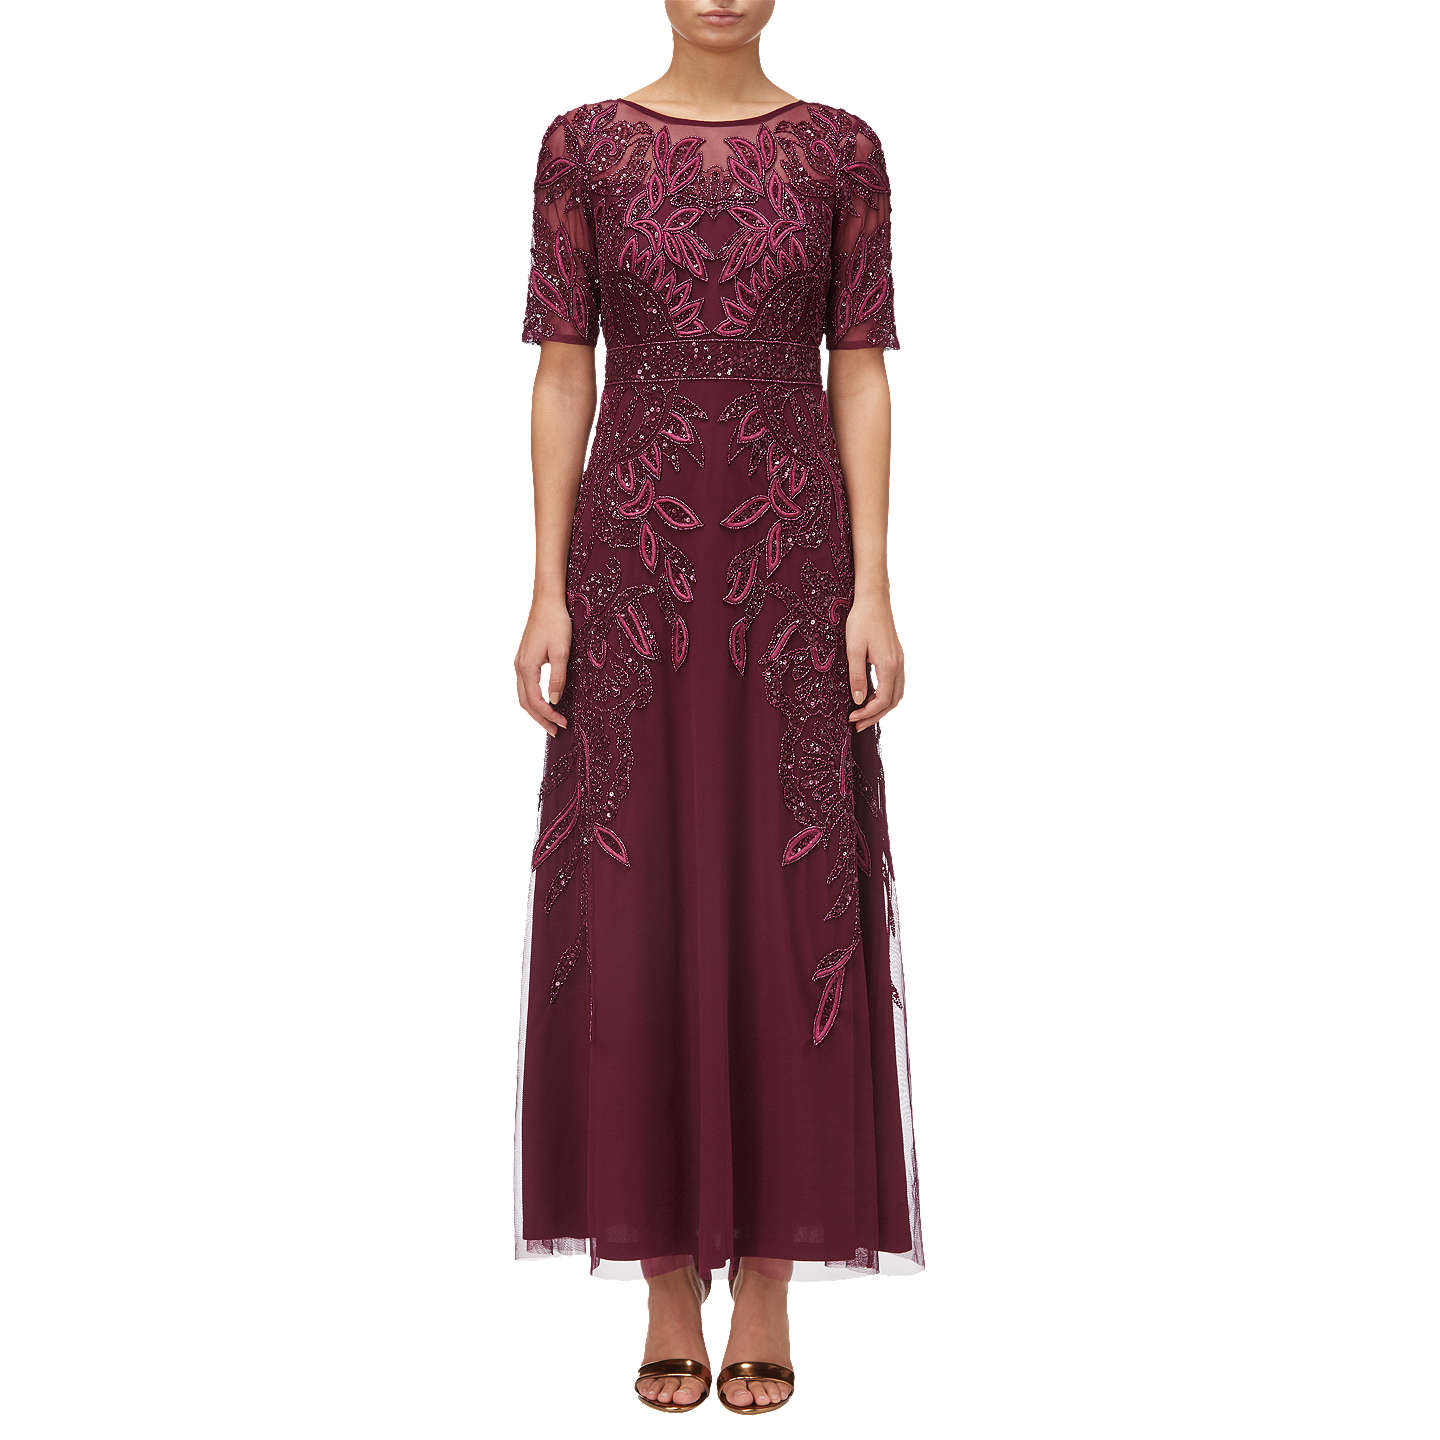 BuyAdrianna Papell Petite Floral Beaded Long Gown, Cabernet, 6 Online at johnlewis.com